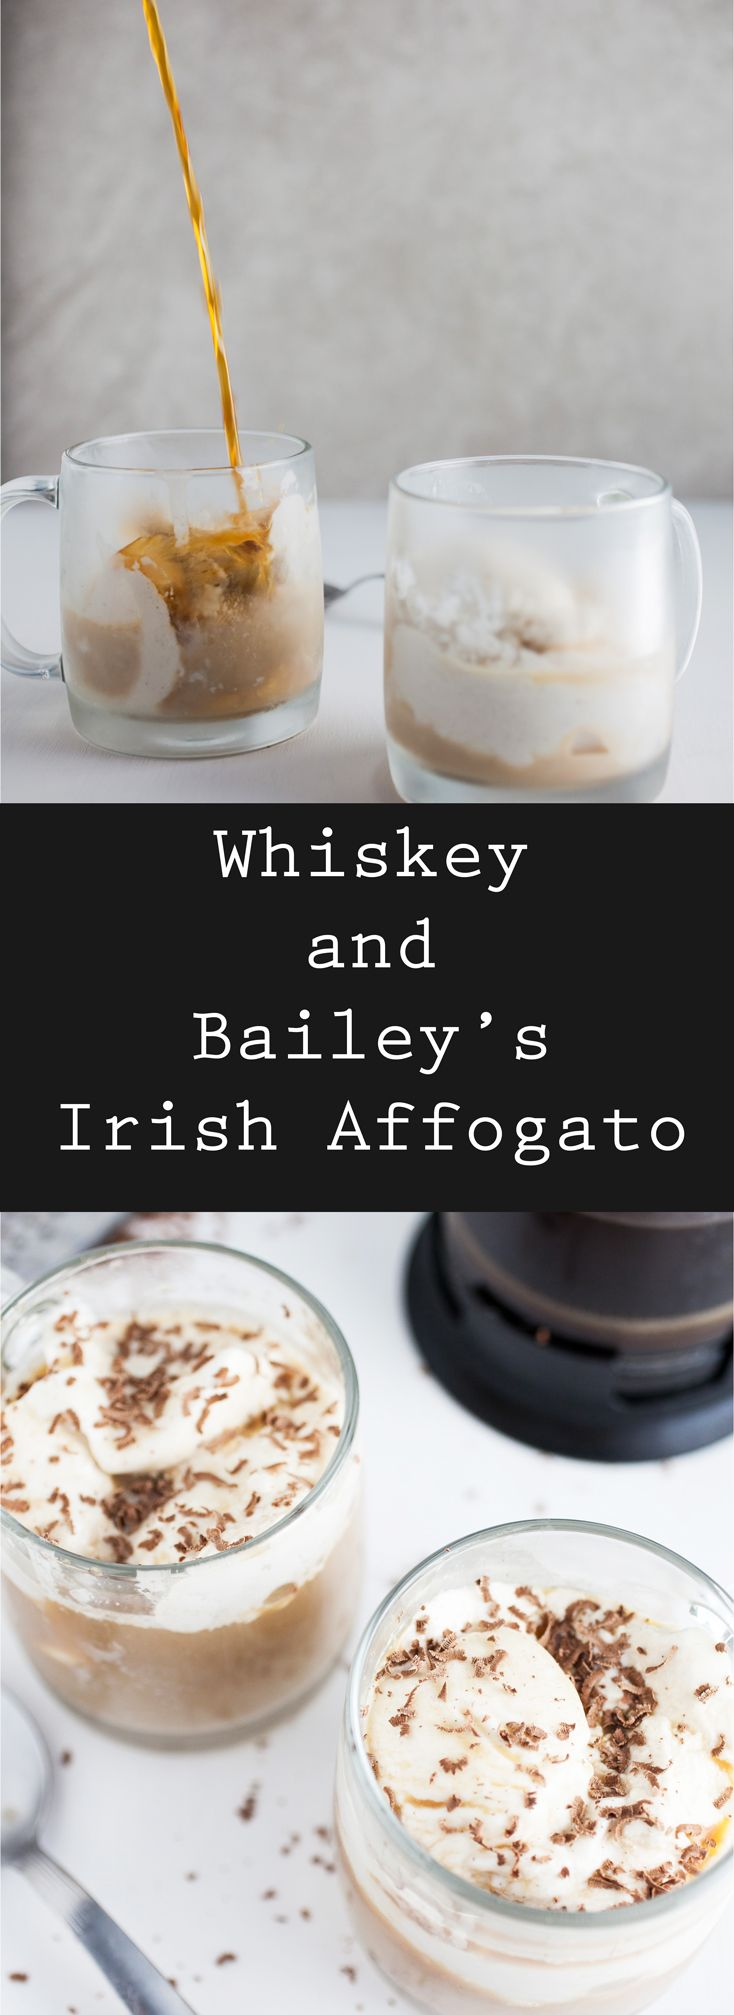 This Whiskey and Bailey's Irish Affogato is the ultimate sweet treat! It's the perfect blend of Irish and Italian decadence. This drink has ice cream, Irish whiskey, Bailiey's Irish cream, coffee, and chocolate. Seriously, what's not to love? This boozy dessert recipe has it all! Celebrate St. Patrick's Day with this boozy dessert cocktail! #ad @drizly #baileys #whiskey #affogato #stpatricksday